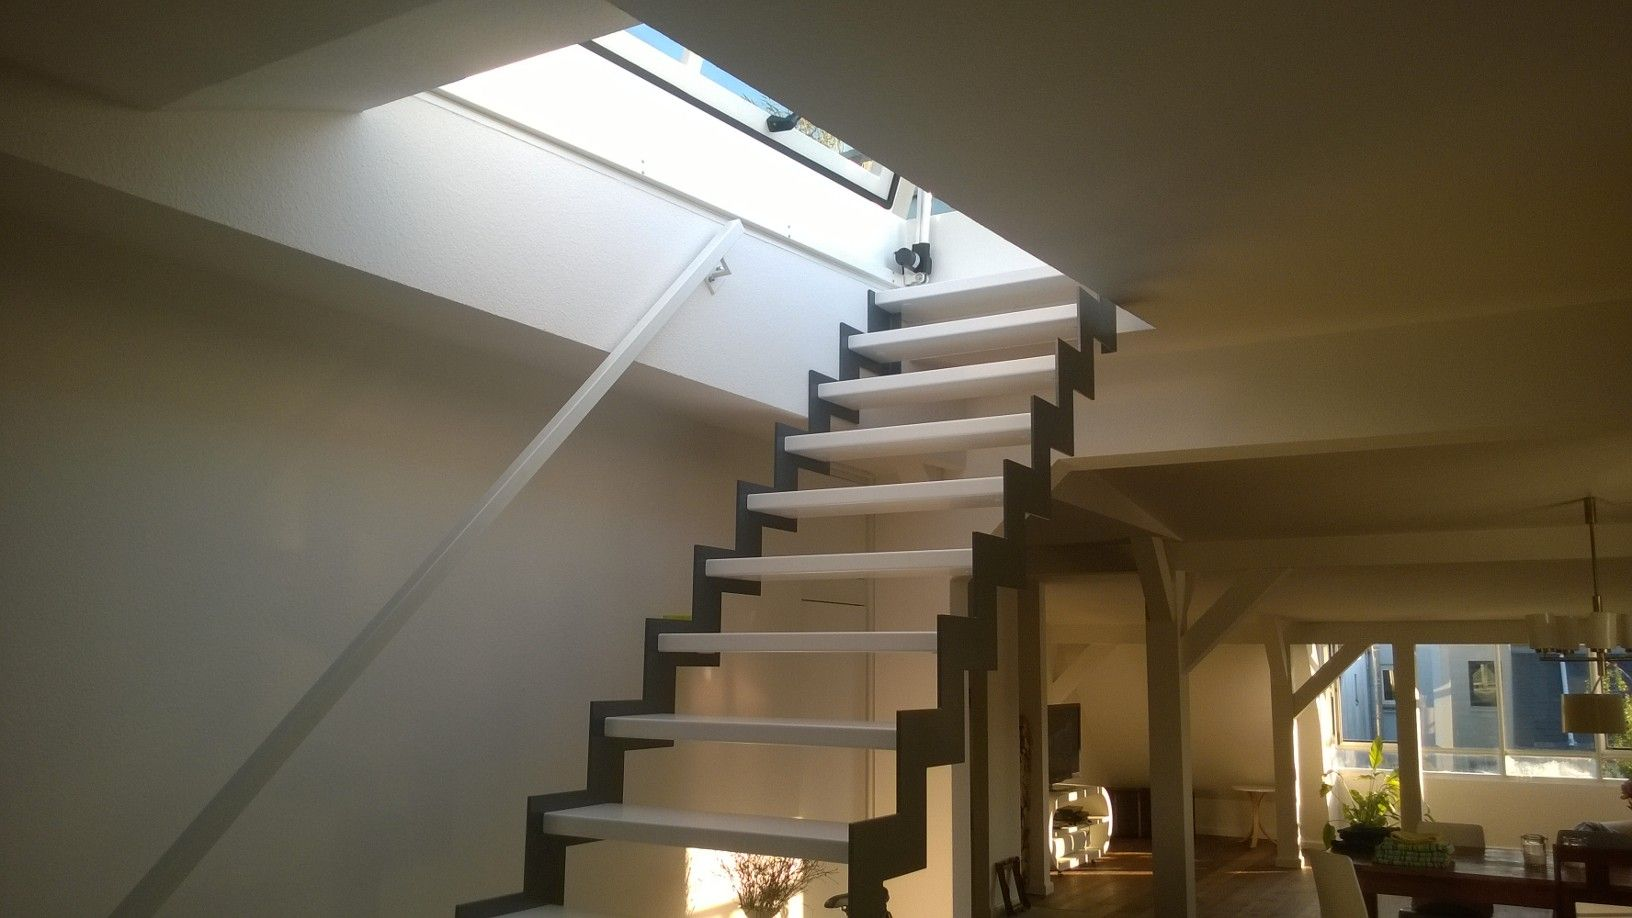 roof hatches in larger sizes can be used in combination with a fixed stair either